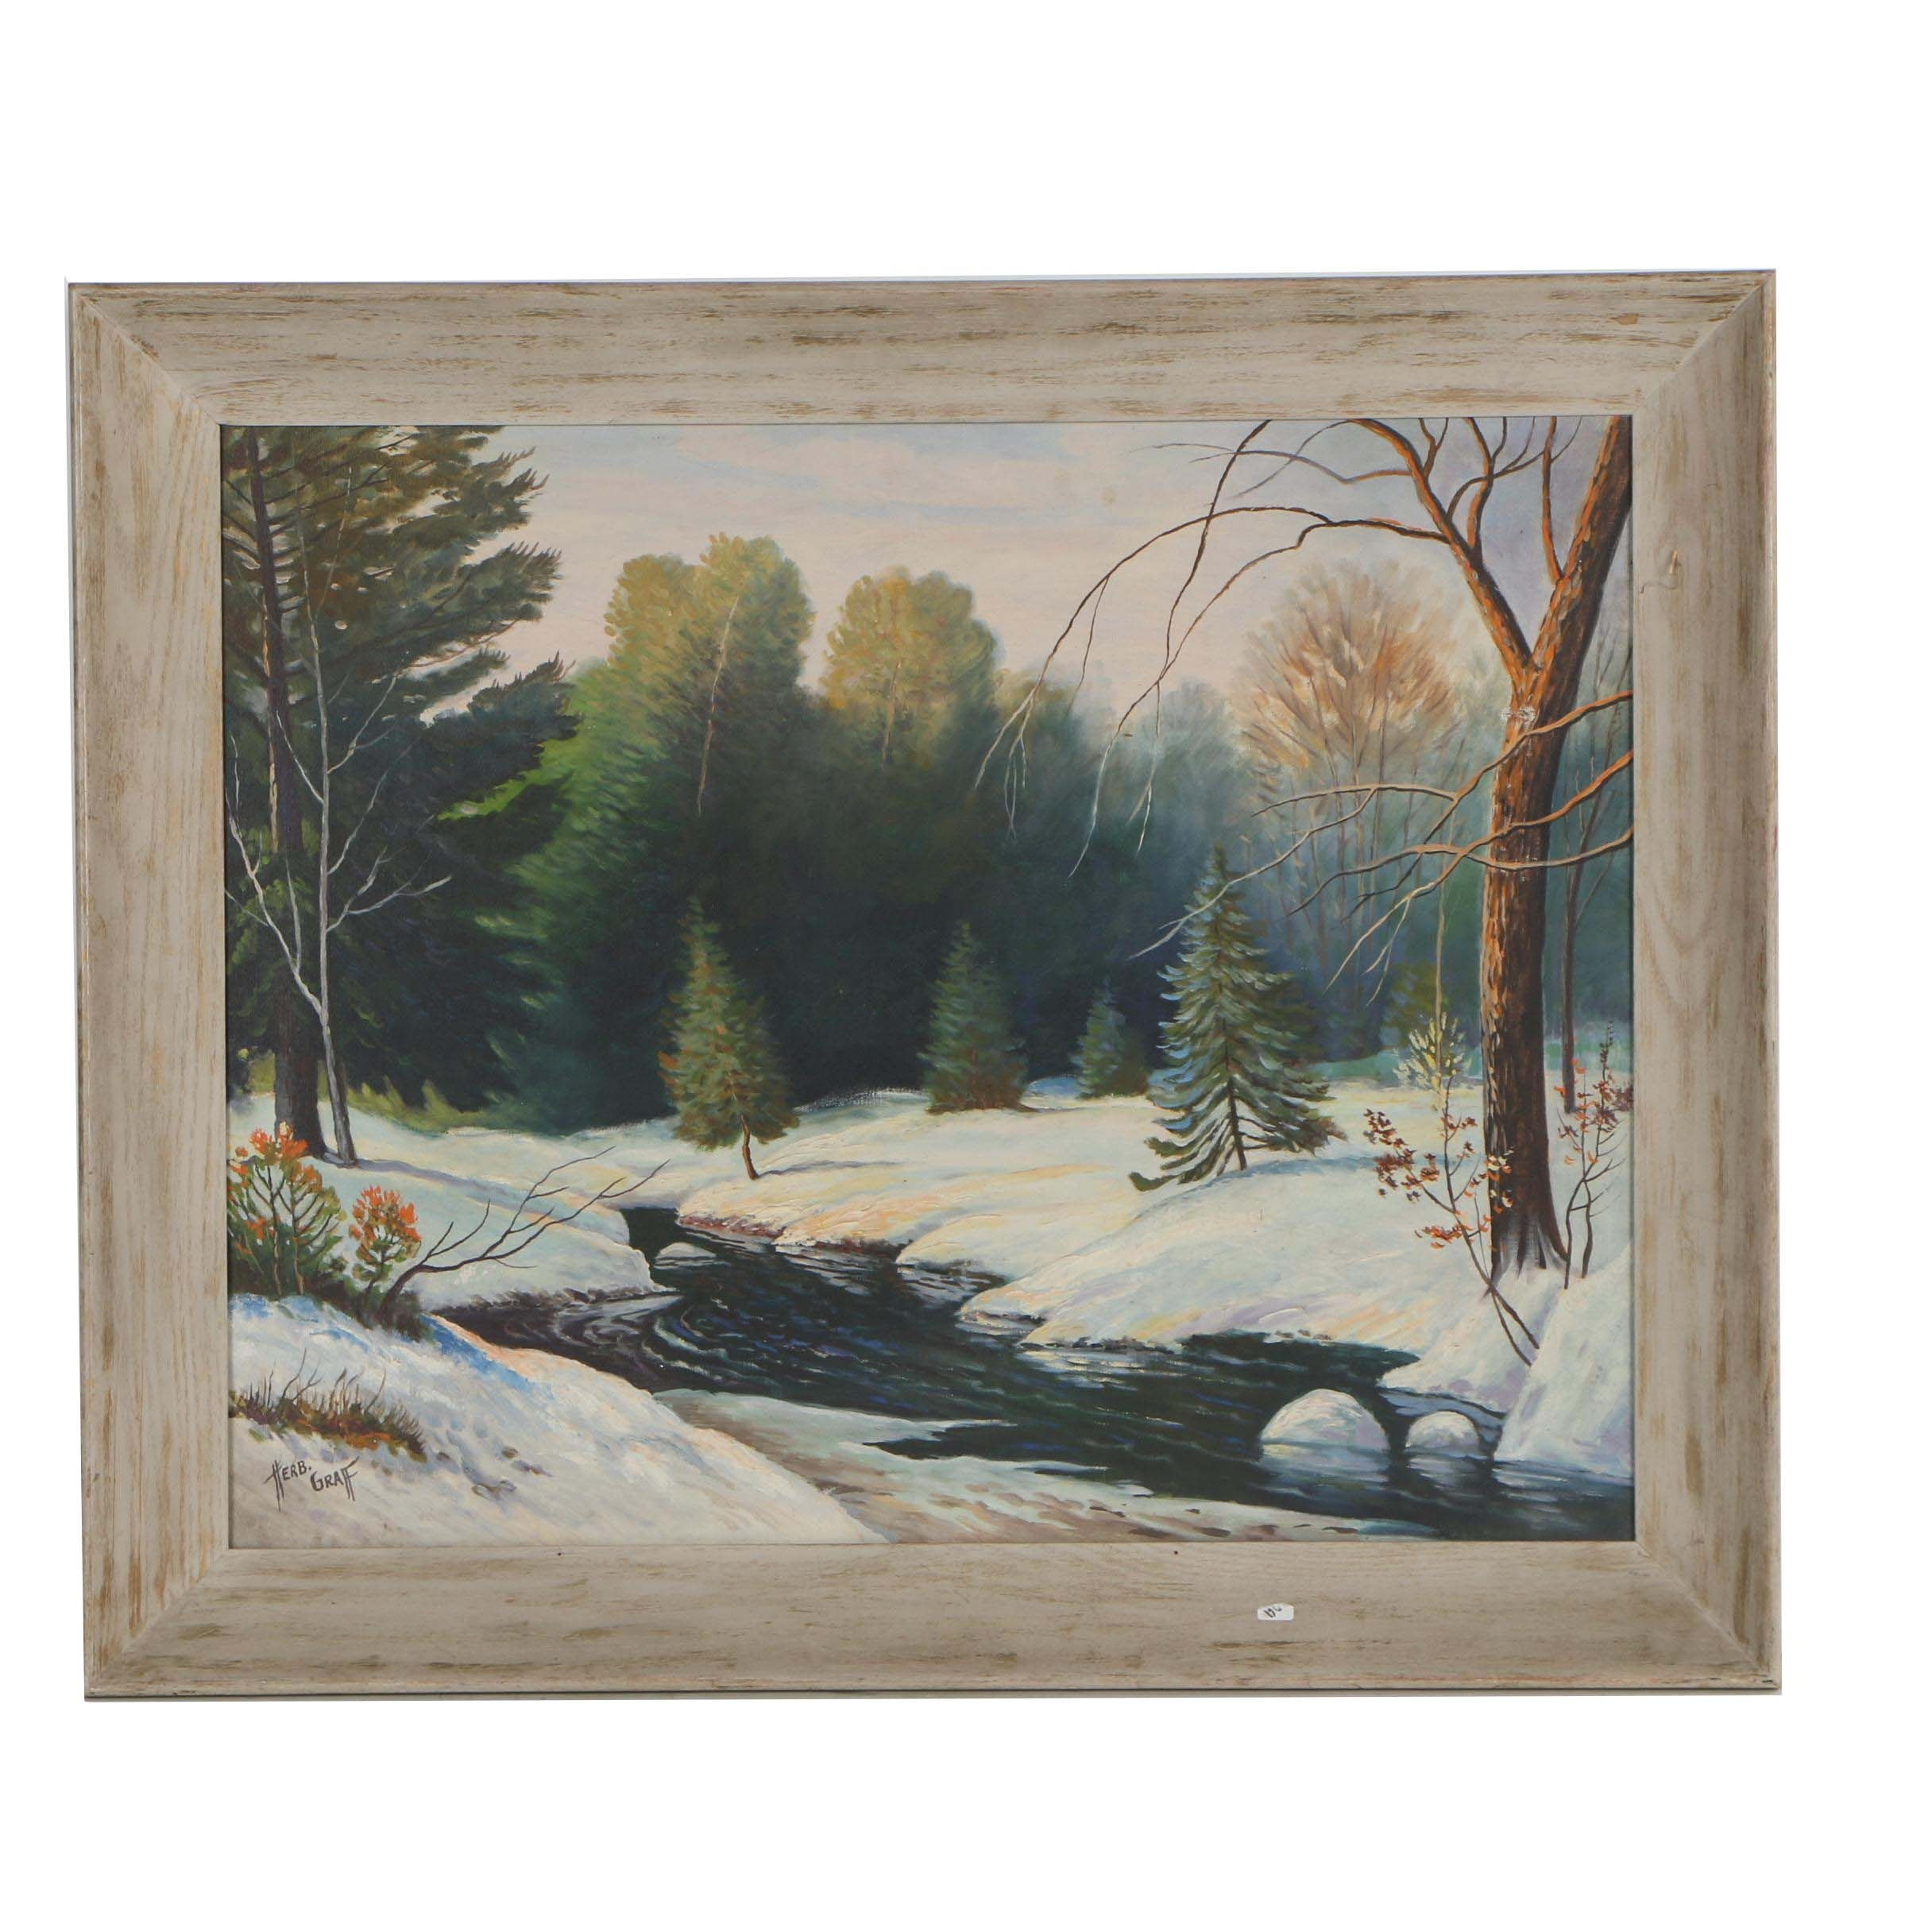 Herb Graff Oil Painting of Winter Landscape